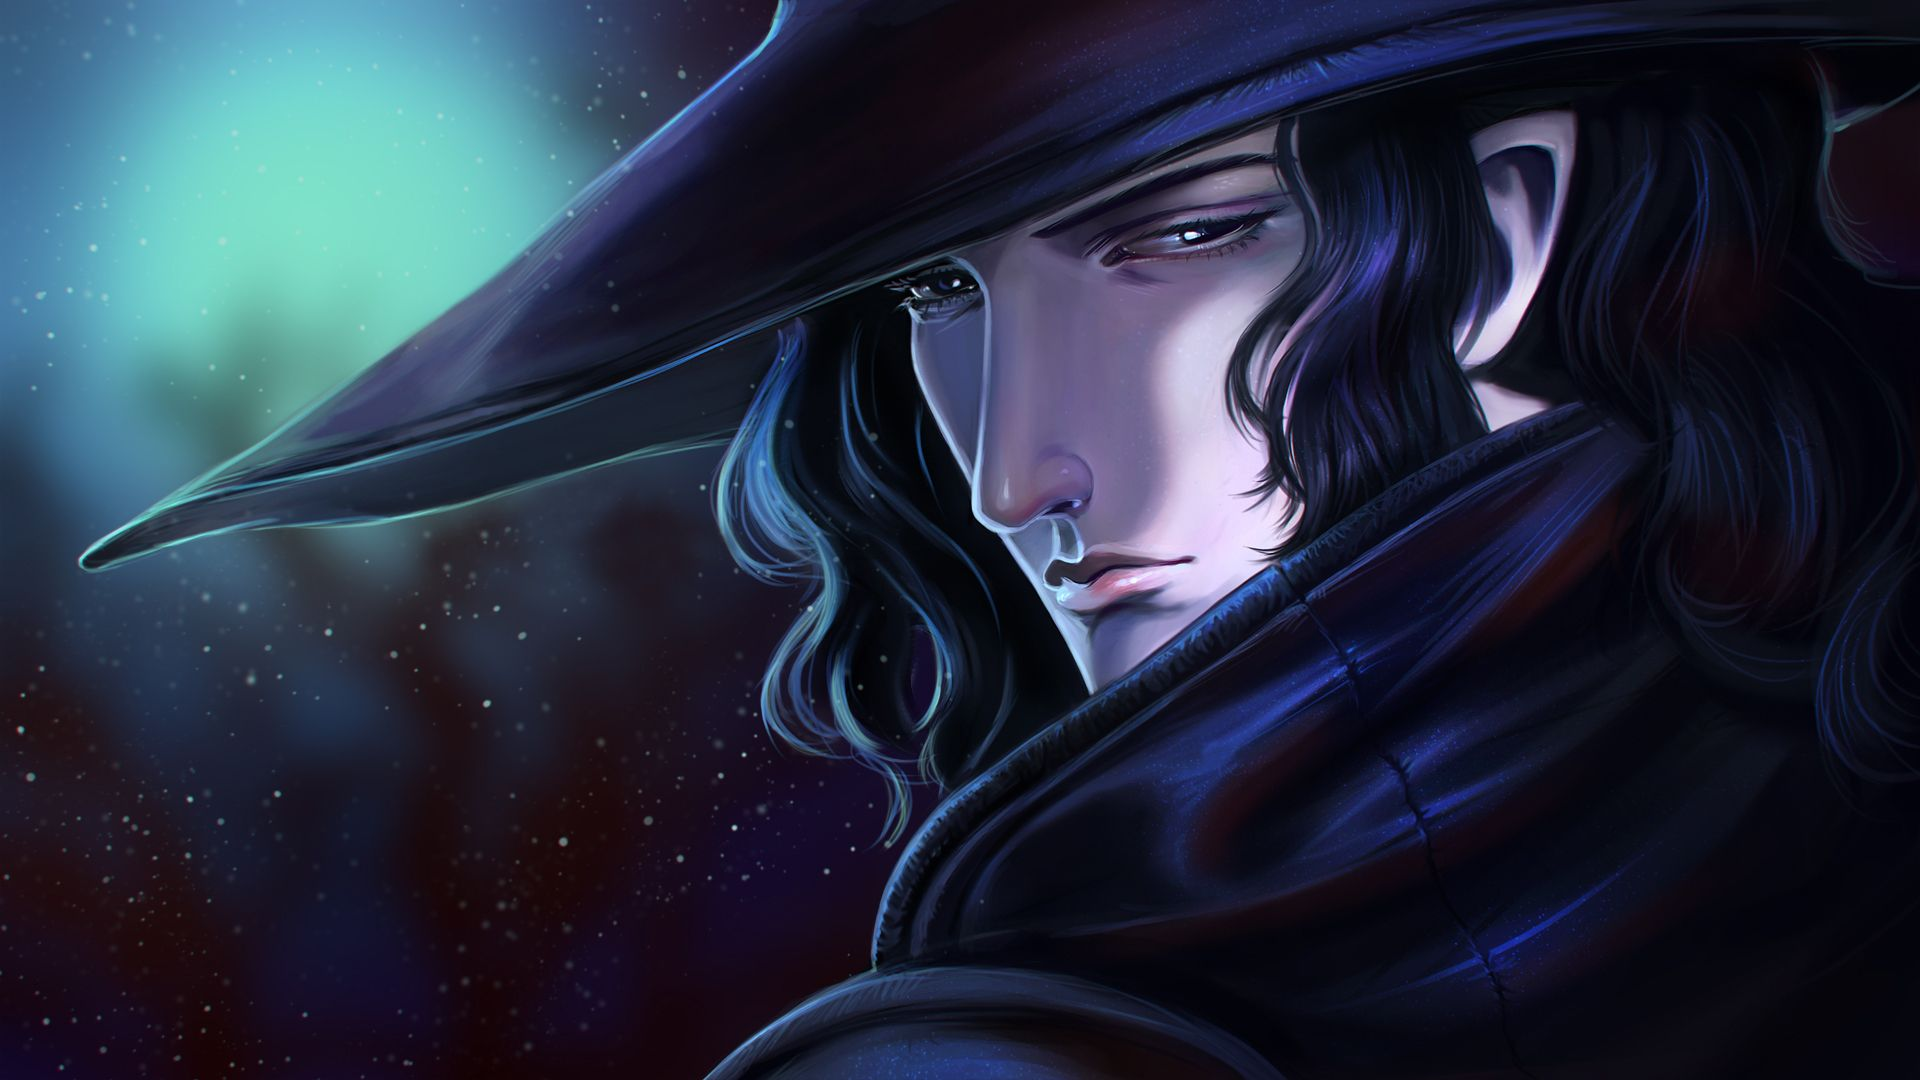 Pin By Kira Nerys On Vampire Hunter D Vampire Hunter D Vampire Hunter Vampire